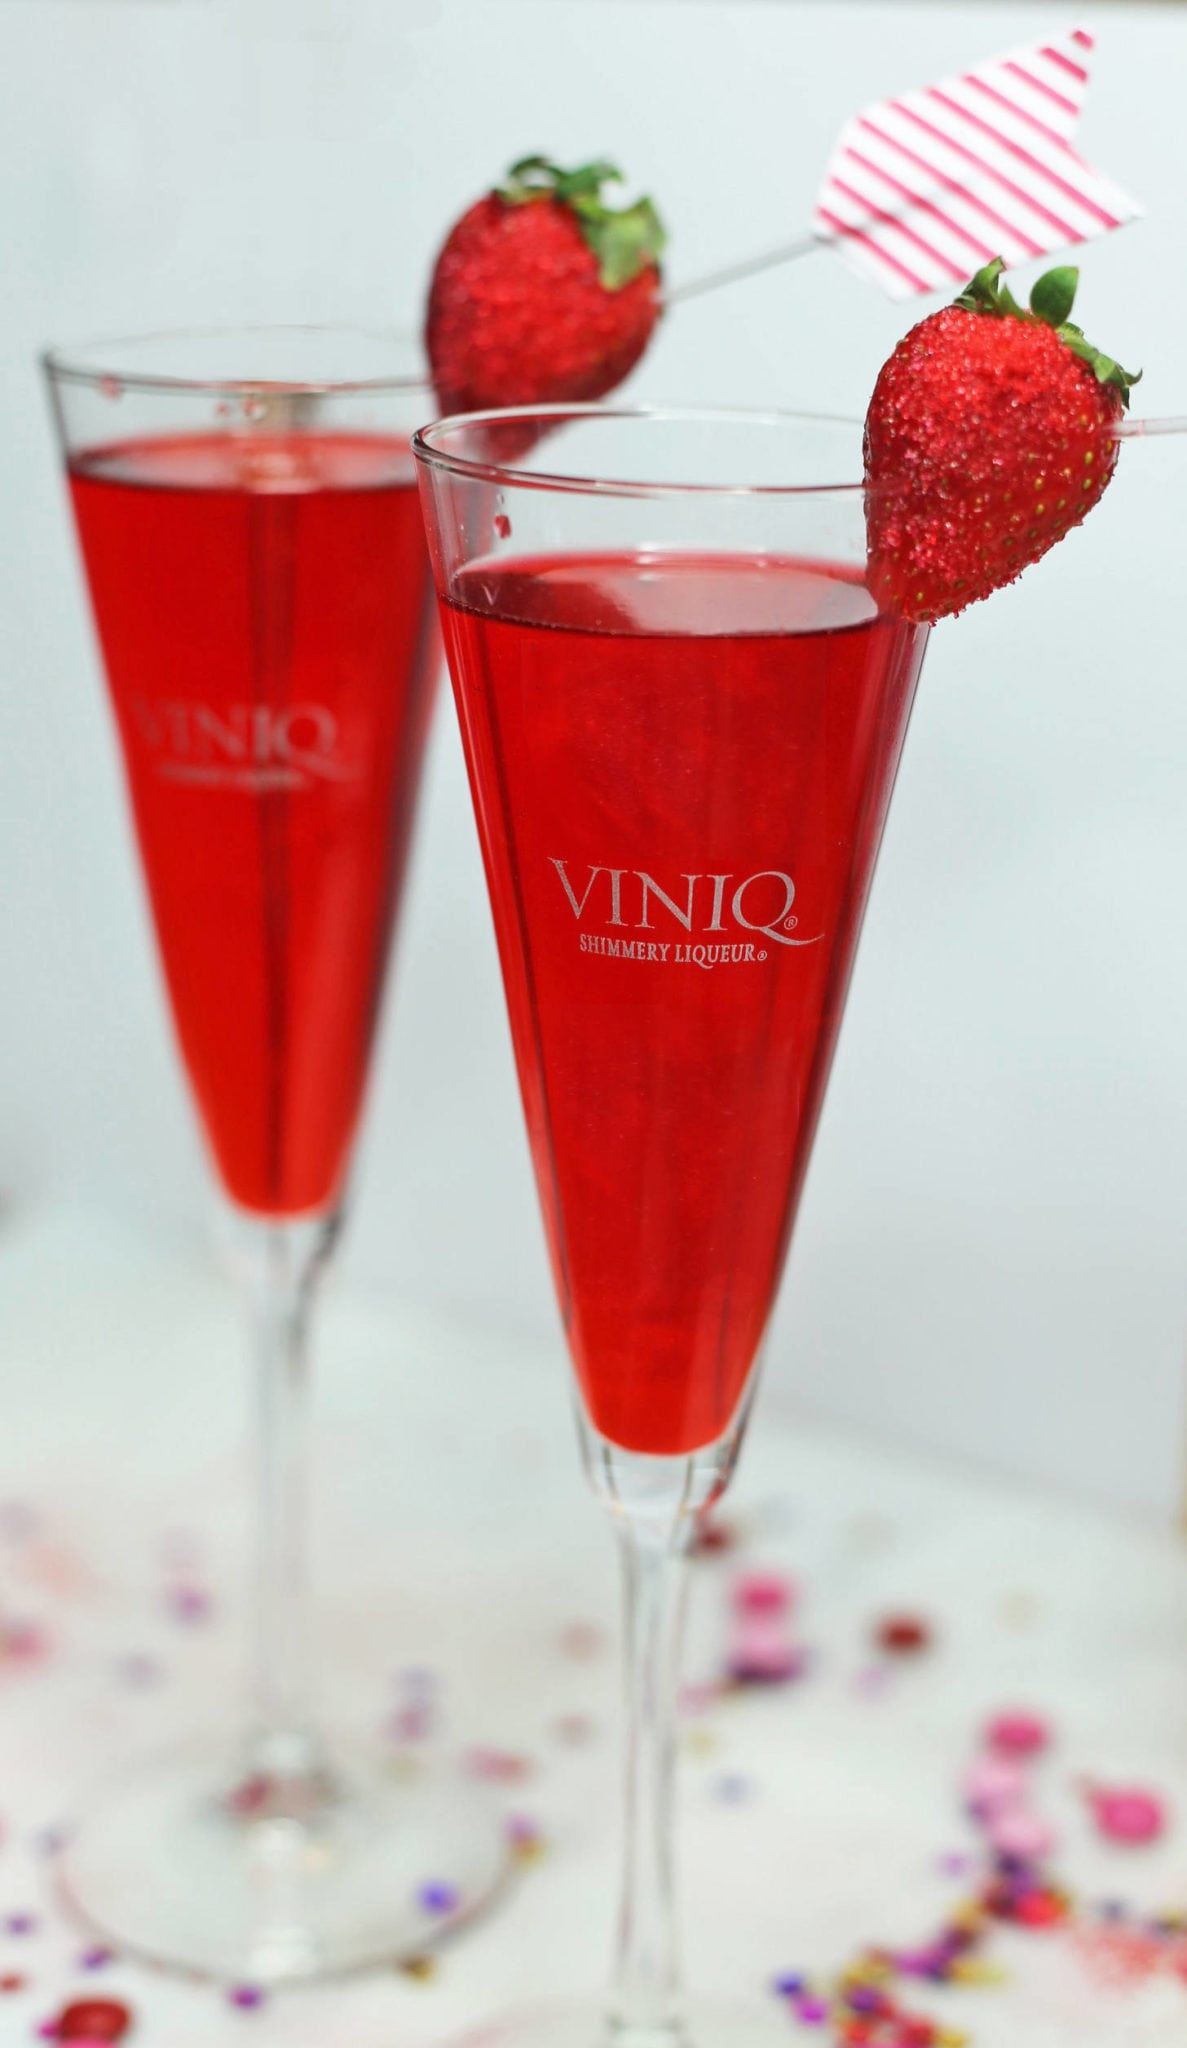 viniq-how-to-make-a-cocktail | Mash Elle beauty blogger | cocktail drink ideas | strawberry drinks